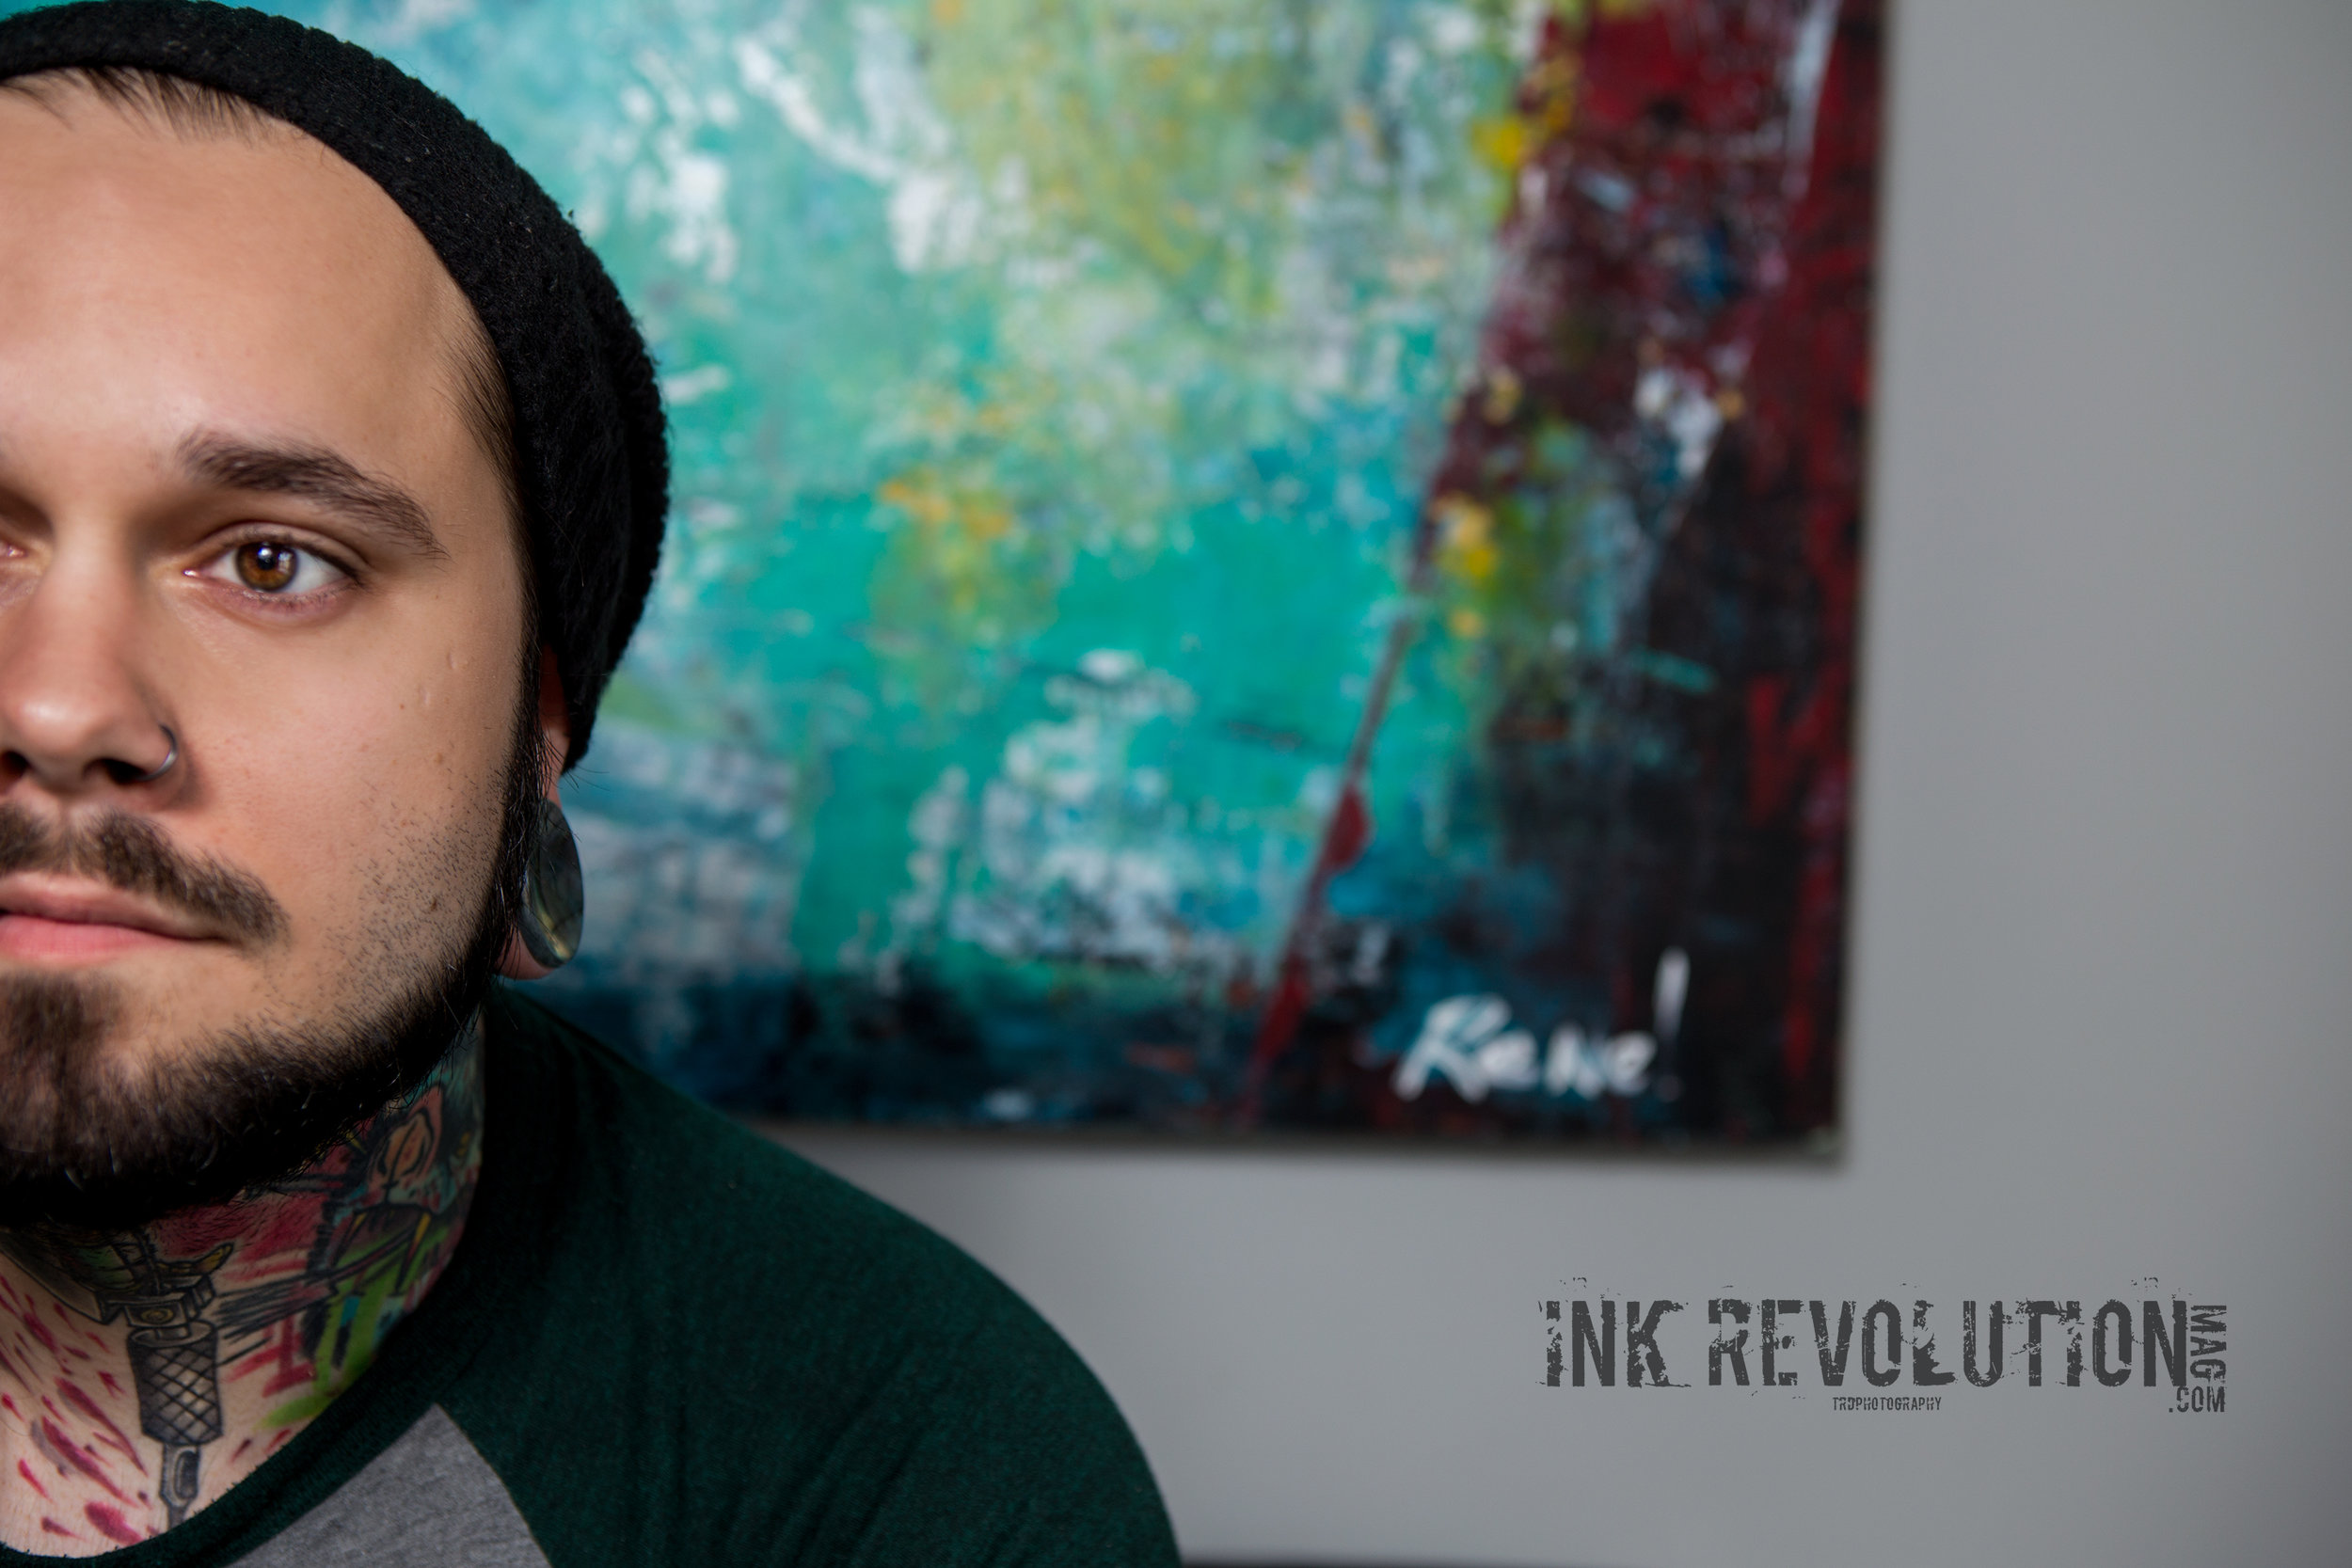 Ink Revolution - Tattoo Artist Michael Clester - Shop - Studio 617 - Photo - TRD Photography